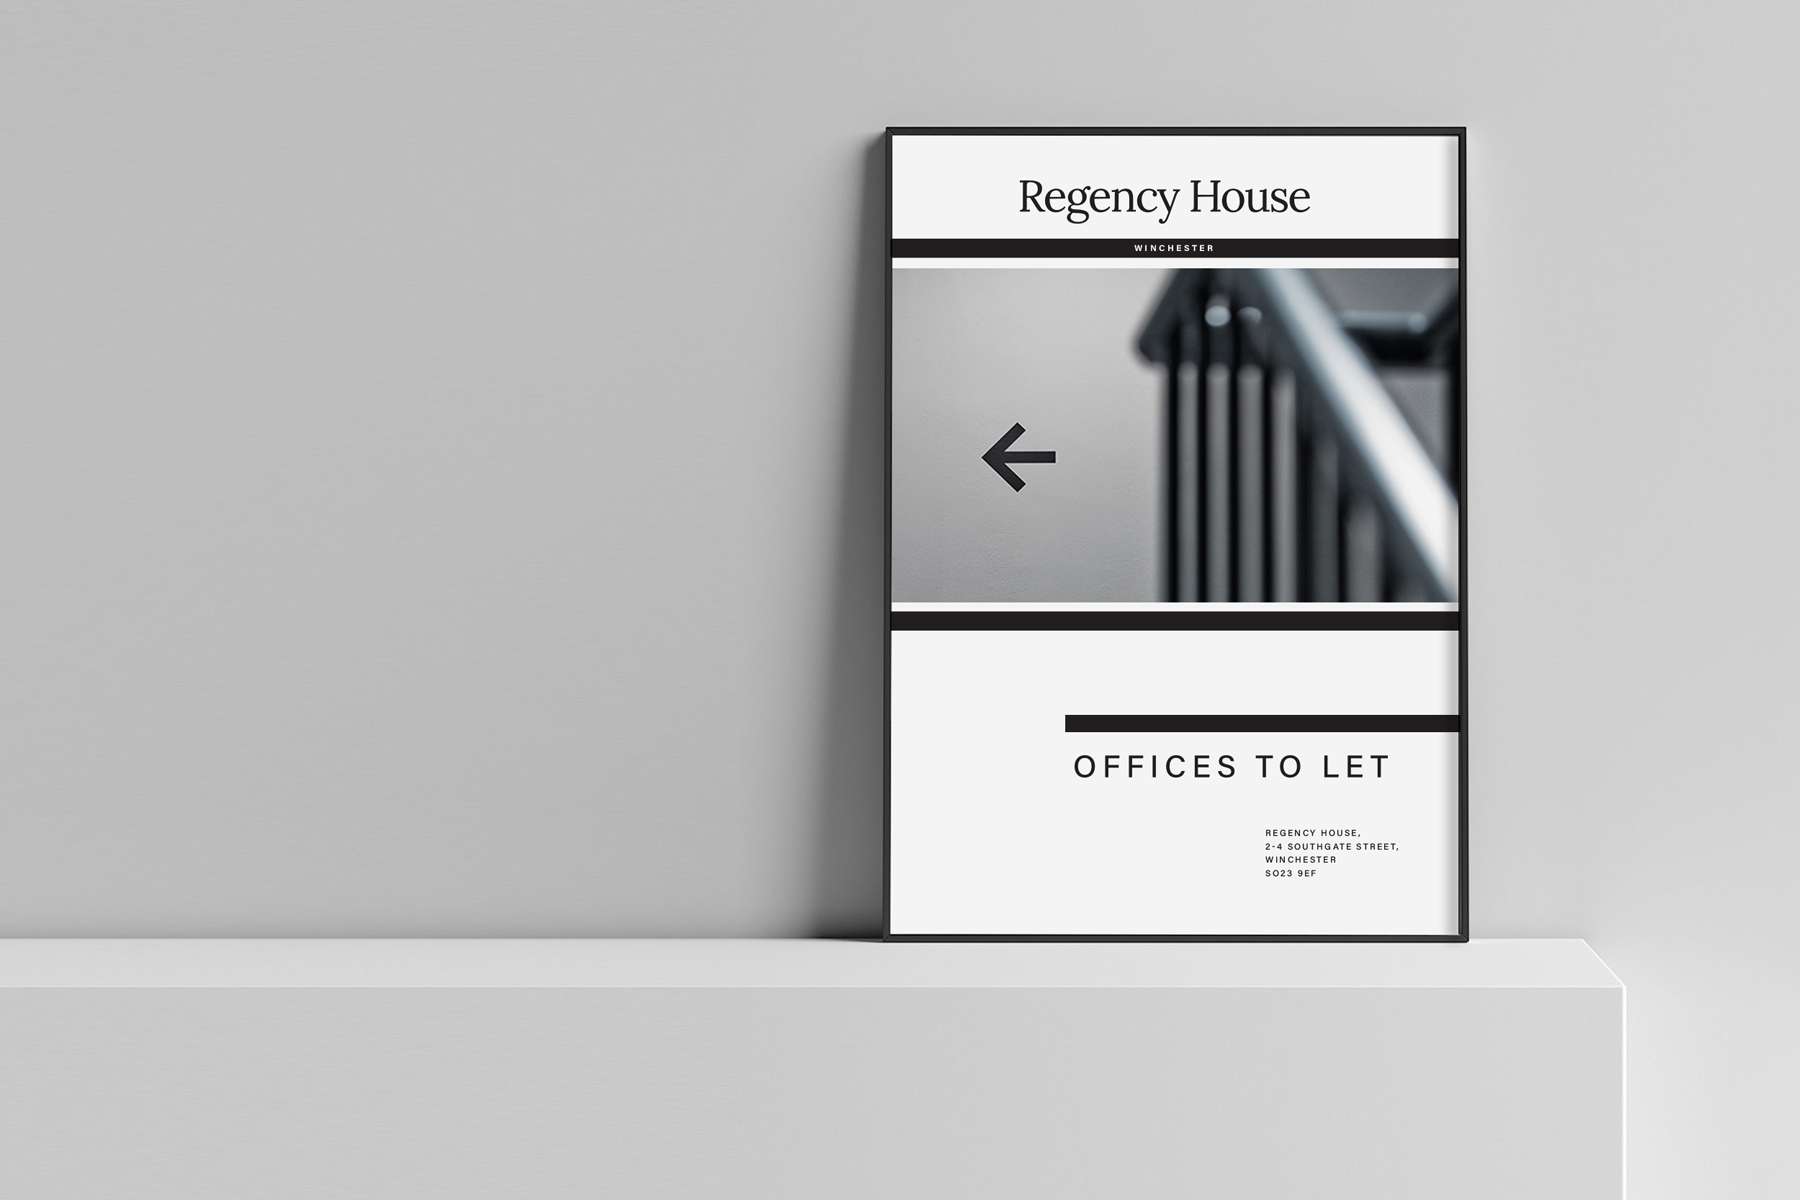 Regency_House-poster-by-ALSO-agency-00.jpg